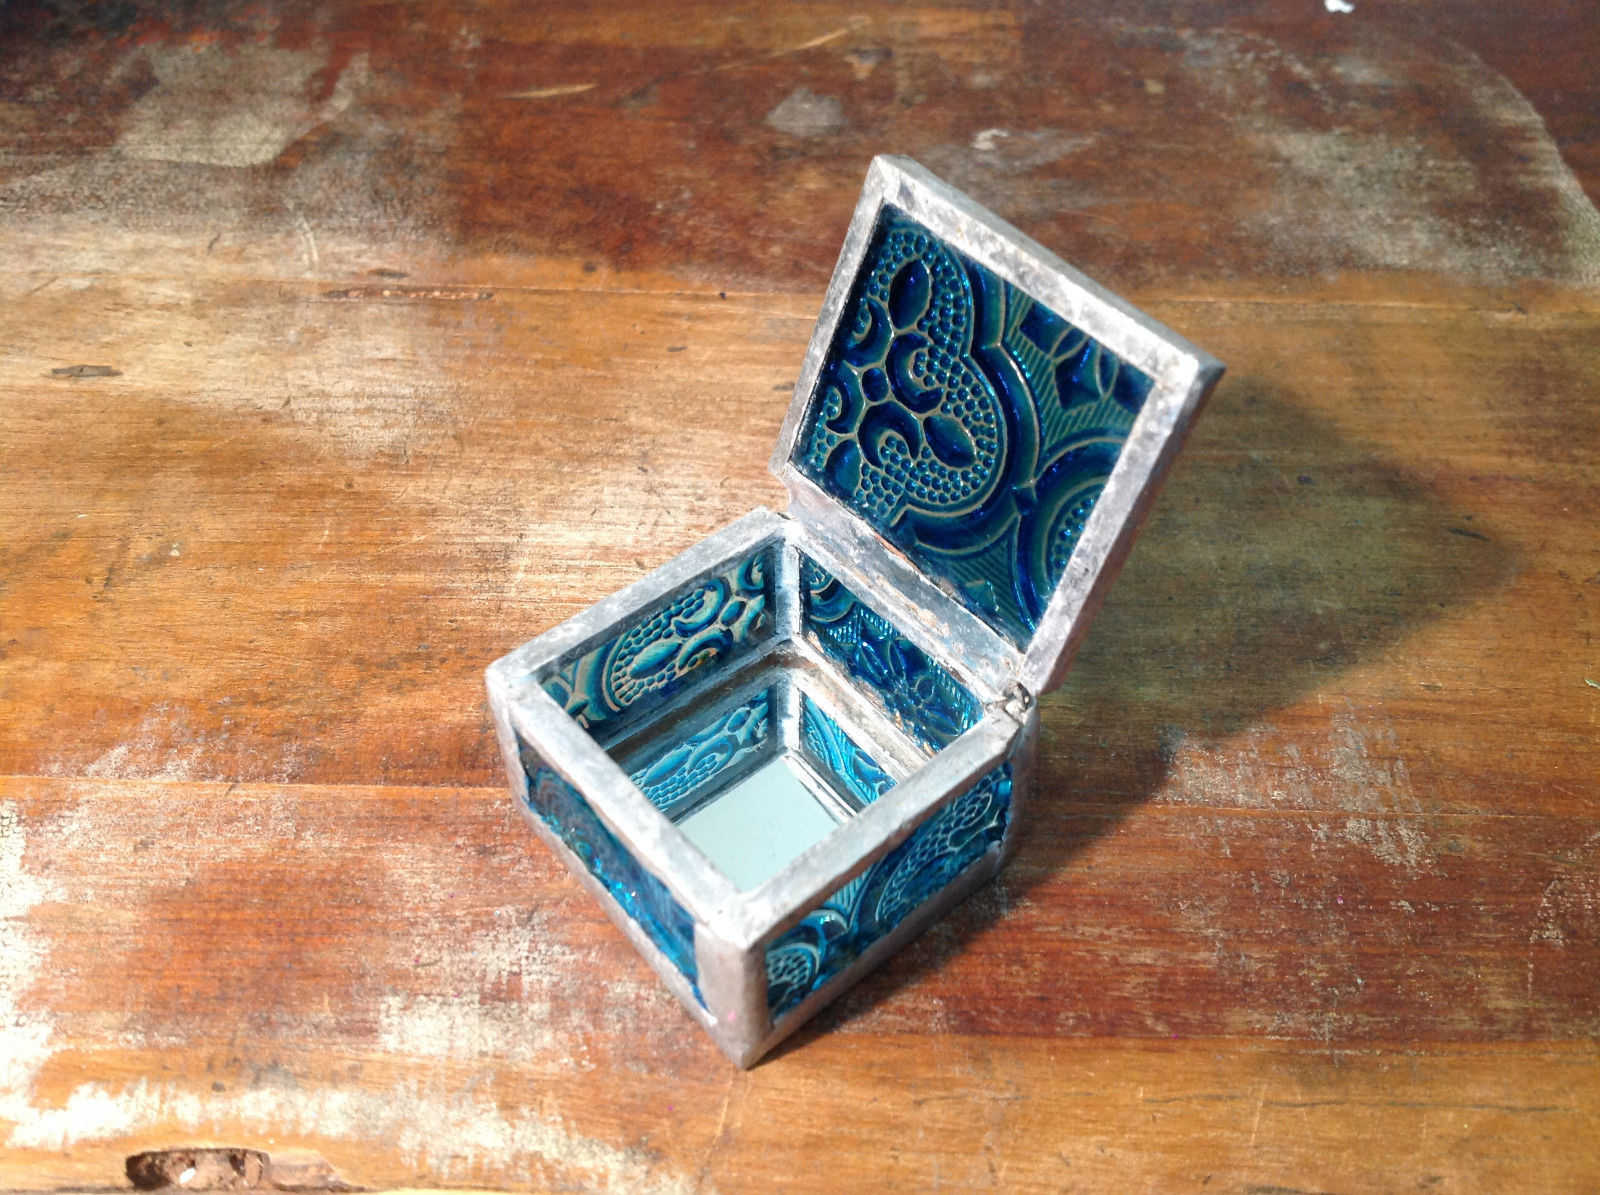 Teal Embossed Glass Ring Box Mirrored Bottom Paisley Designed Glass Handmade